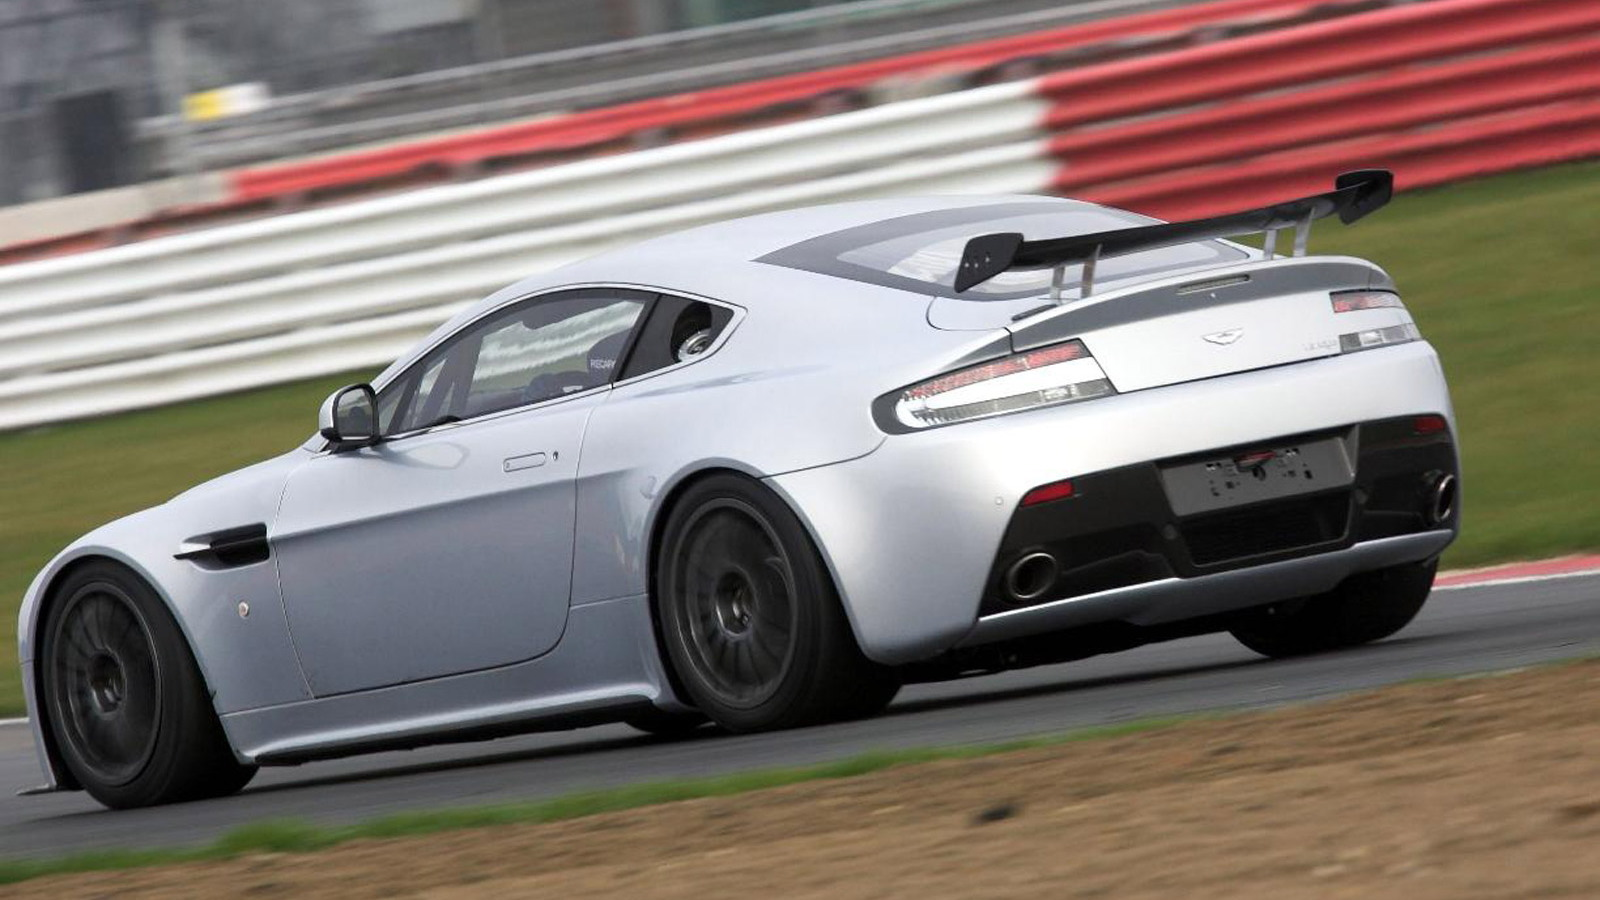 2012 Aston Martin Vantage GT4 race car